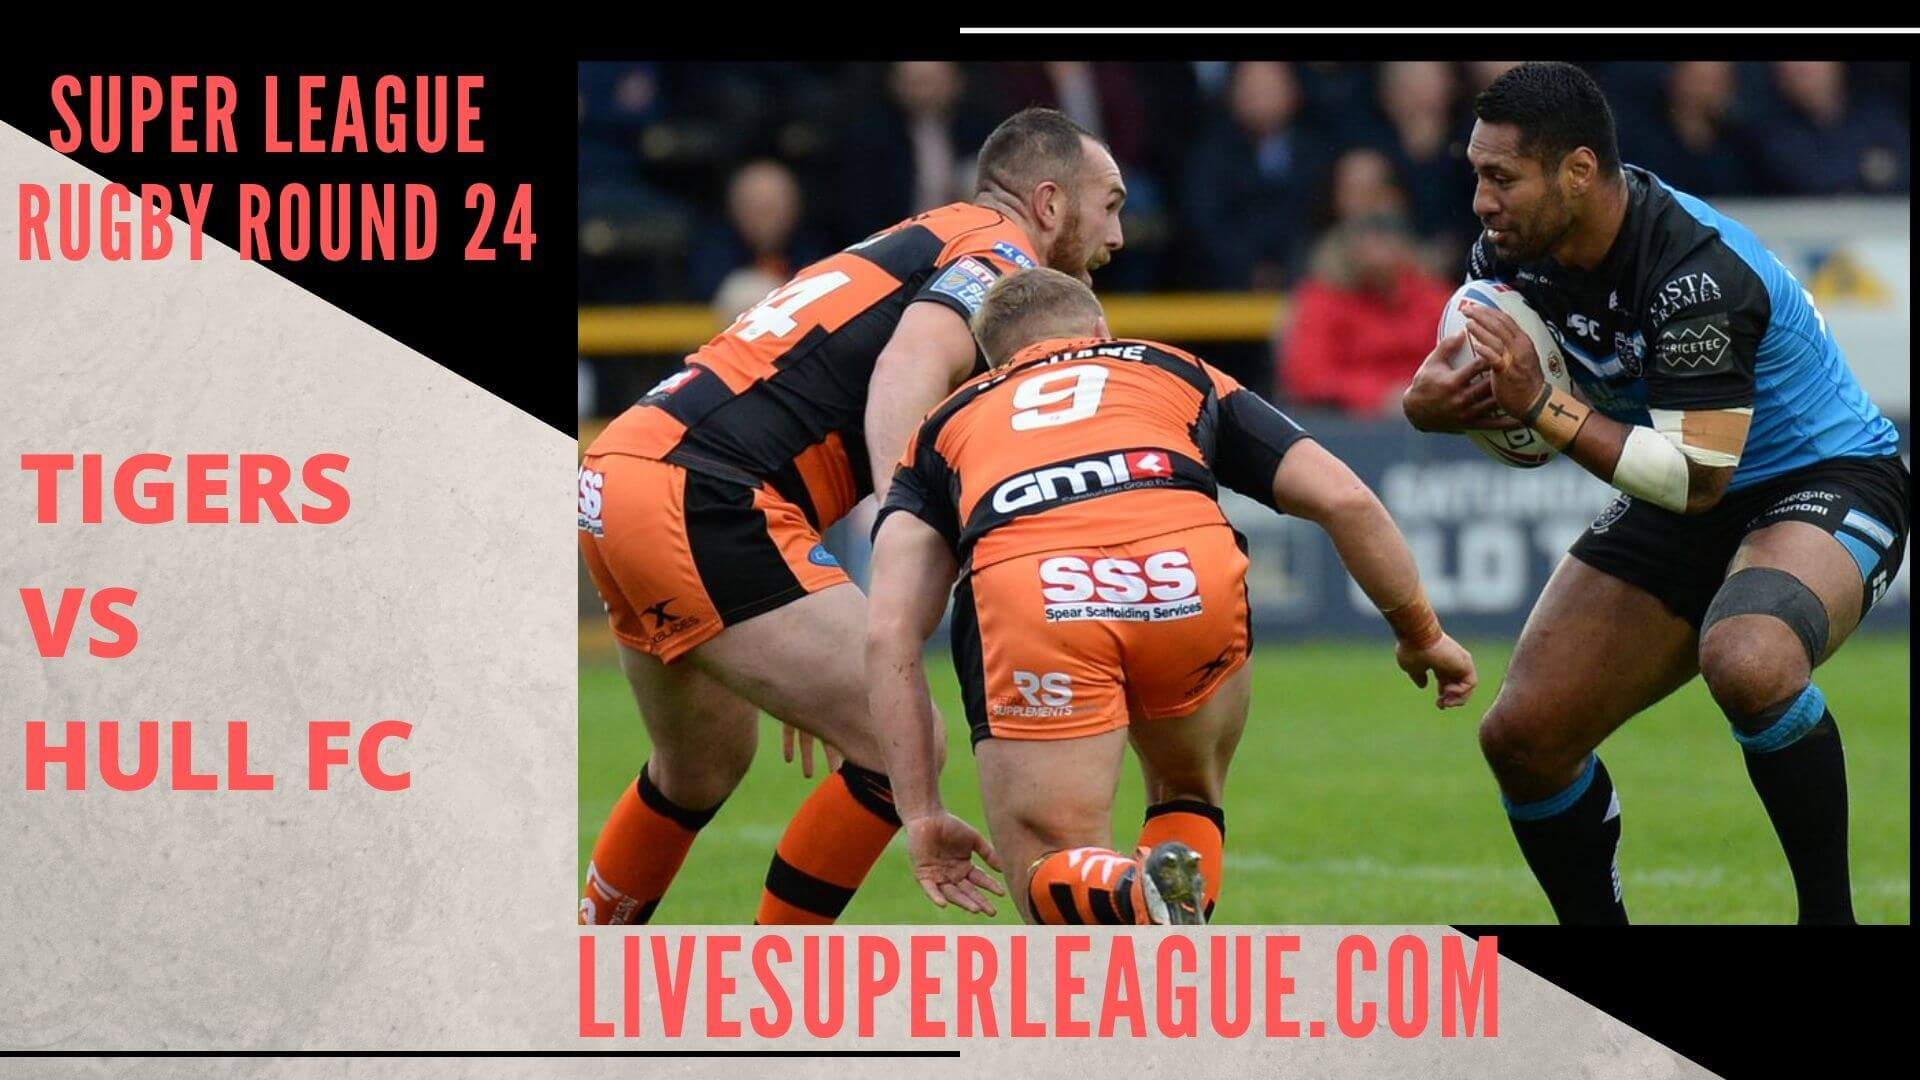 Castleford Tigers Vs Hull Fc Live Stream | Round 24: Full Match Replay